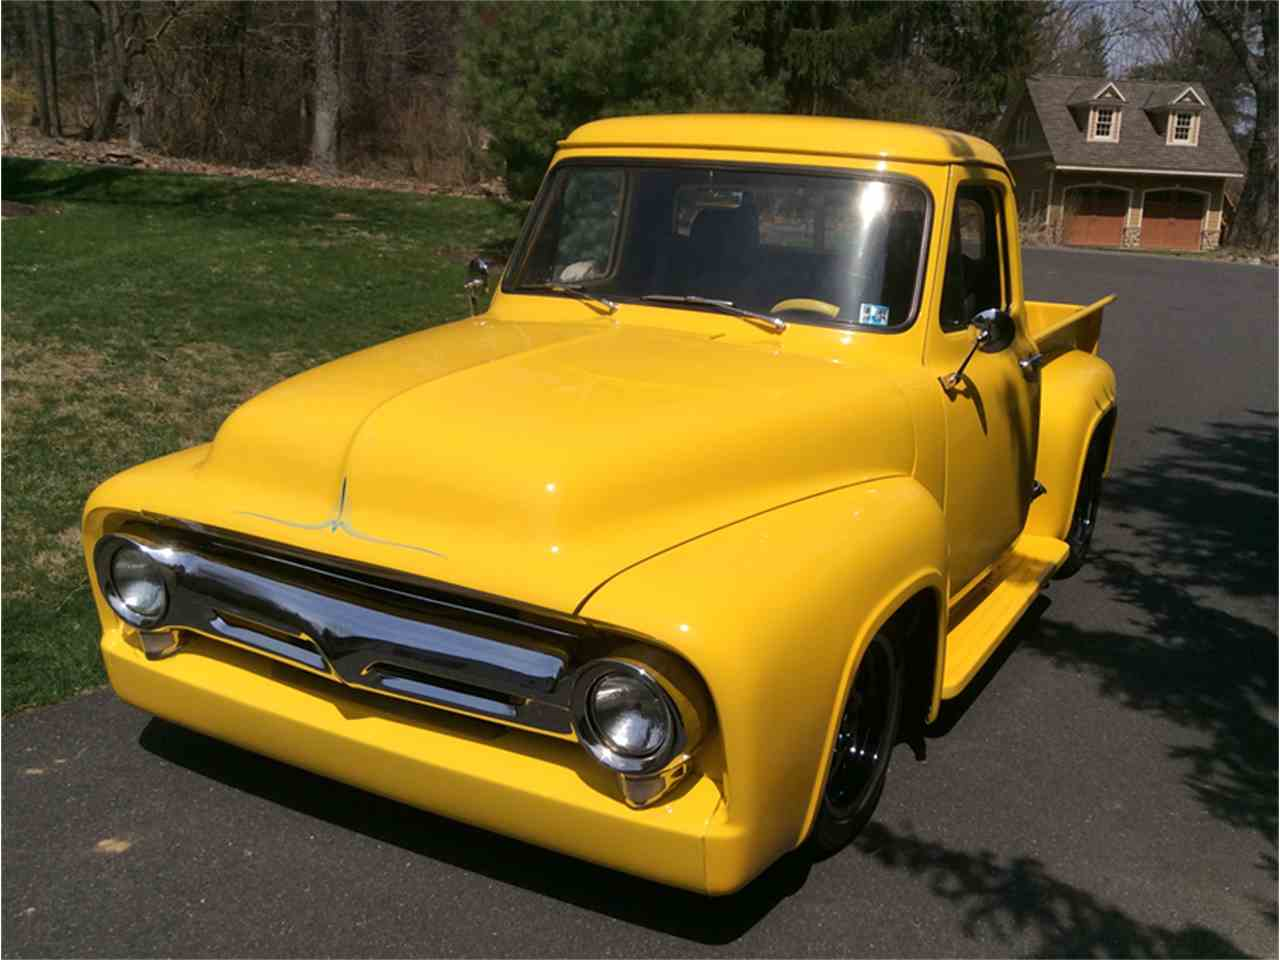 1950 ford f100 for sale craigslist - 1953 Ford F100 974105